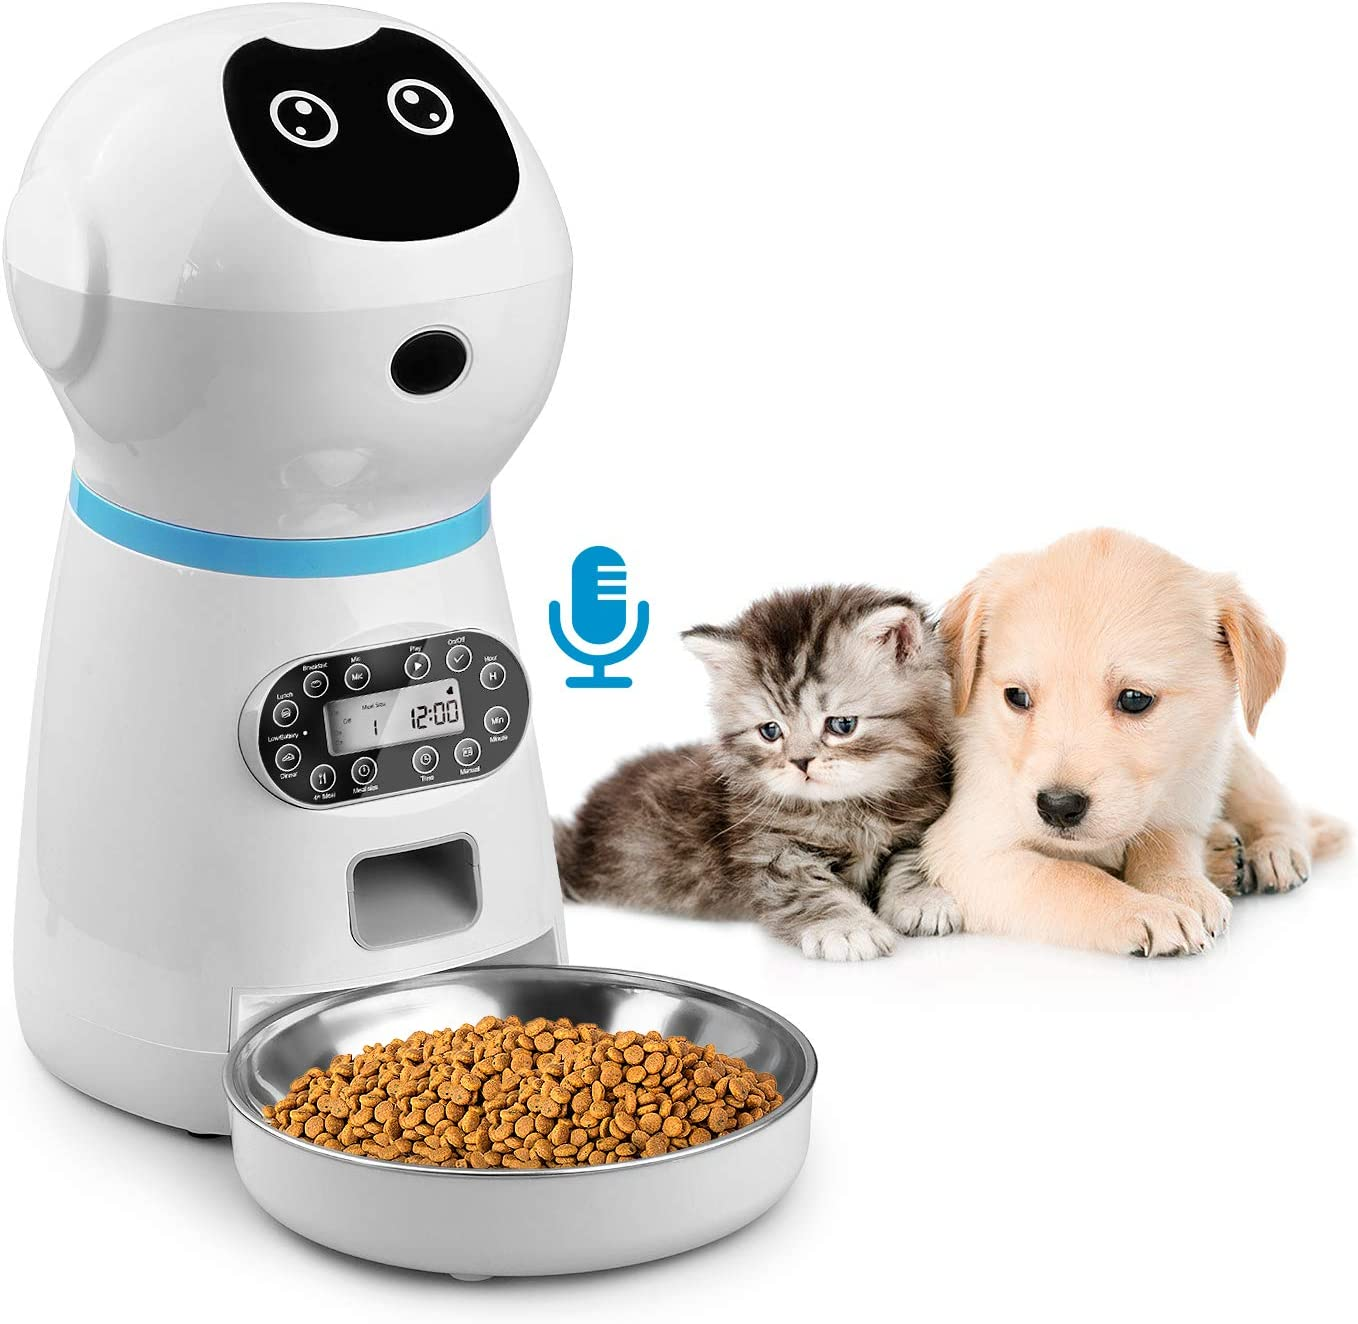 EZMioo Automatic Cat Feeder,3.5L Auto Dog Food Dispenser with Stainless Steel Food Bowl,1-4 Meals per Day Voice Recorder and Portion Control for Small & Medium Pets